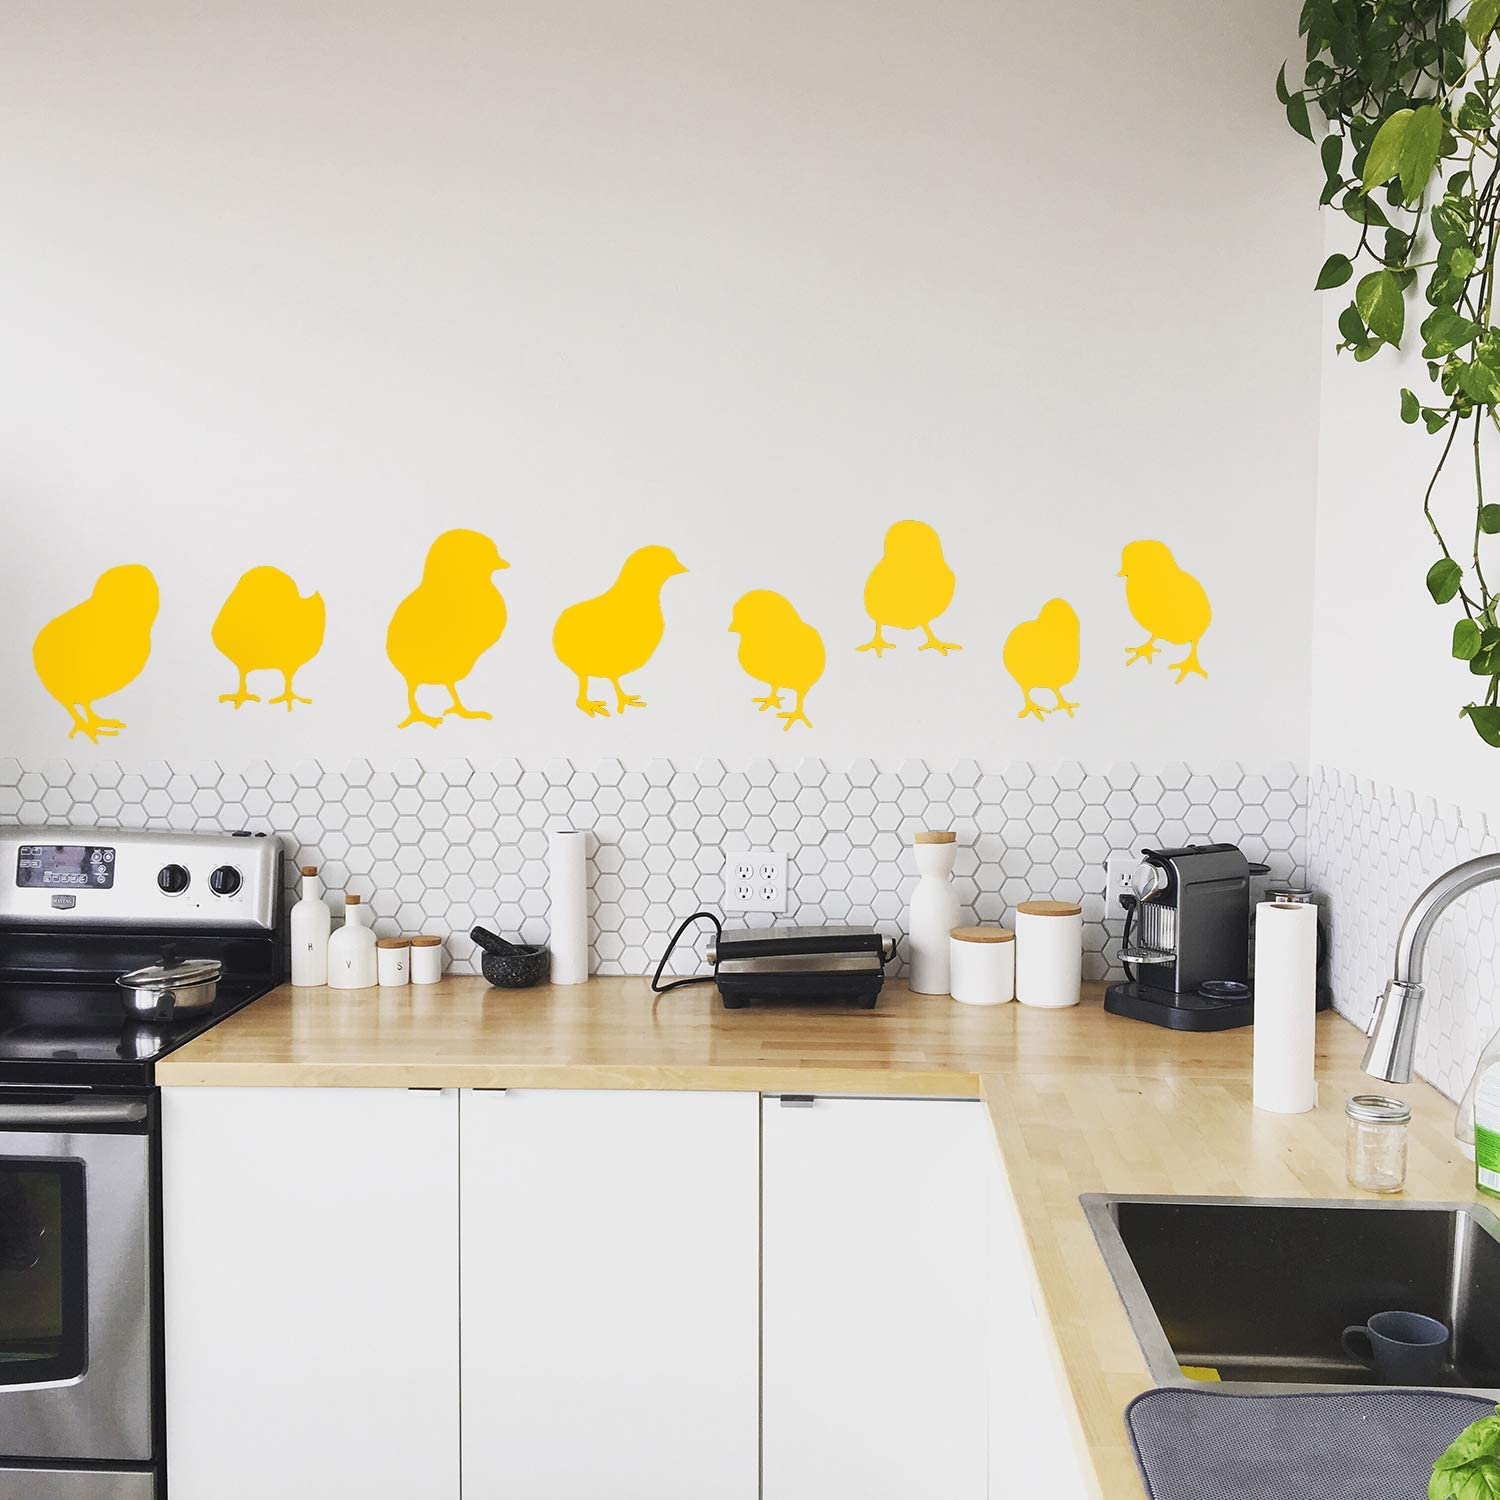 Set of 8 Vinyl Wall Art Decals - Baby Chicks - From 7